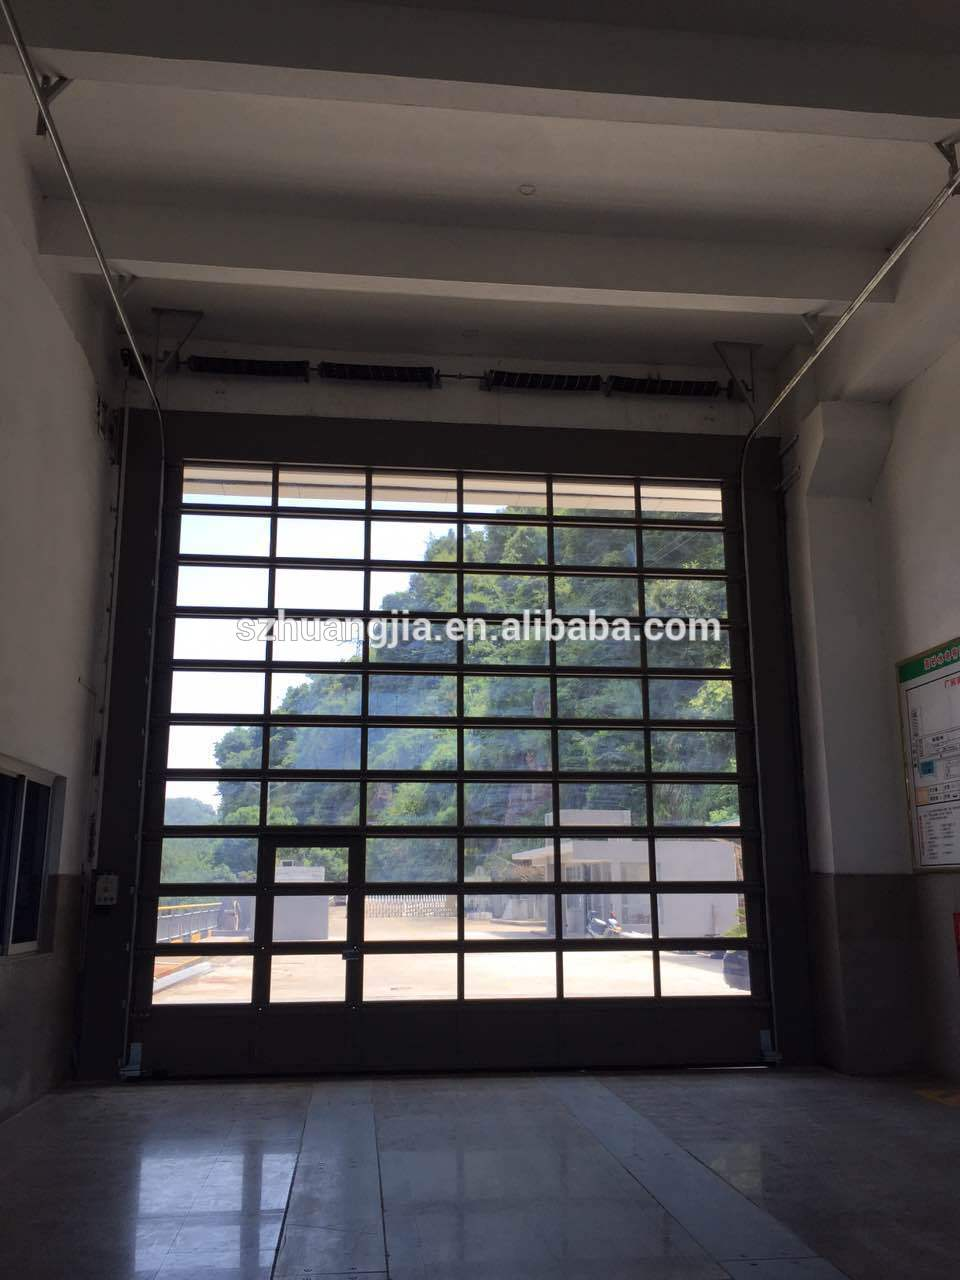 Sectional Doors Product : Electric heavy duty glass panel sectional garage door with